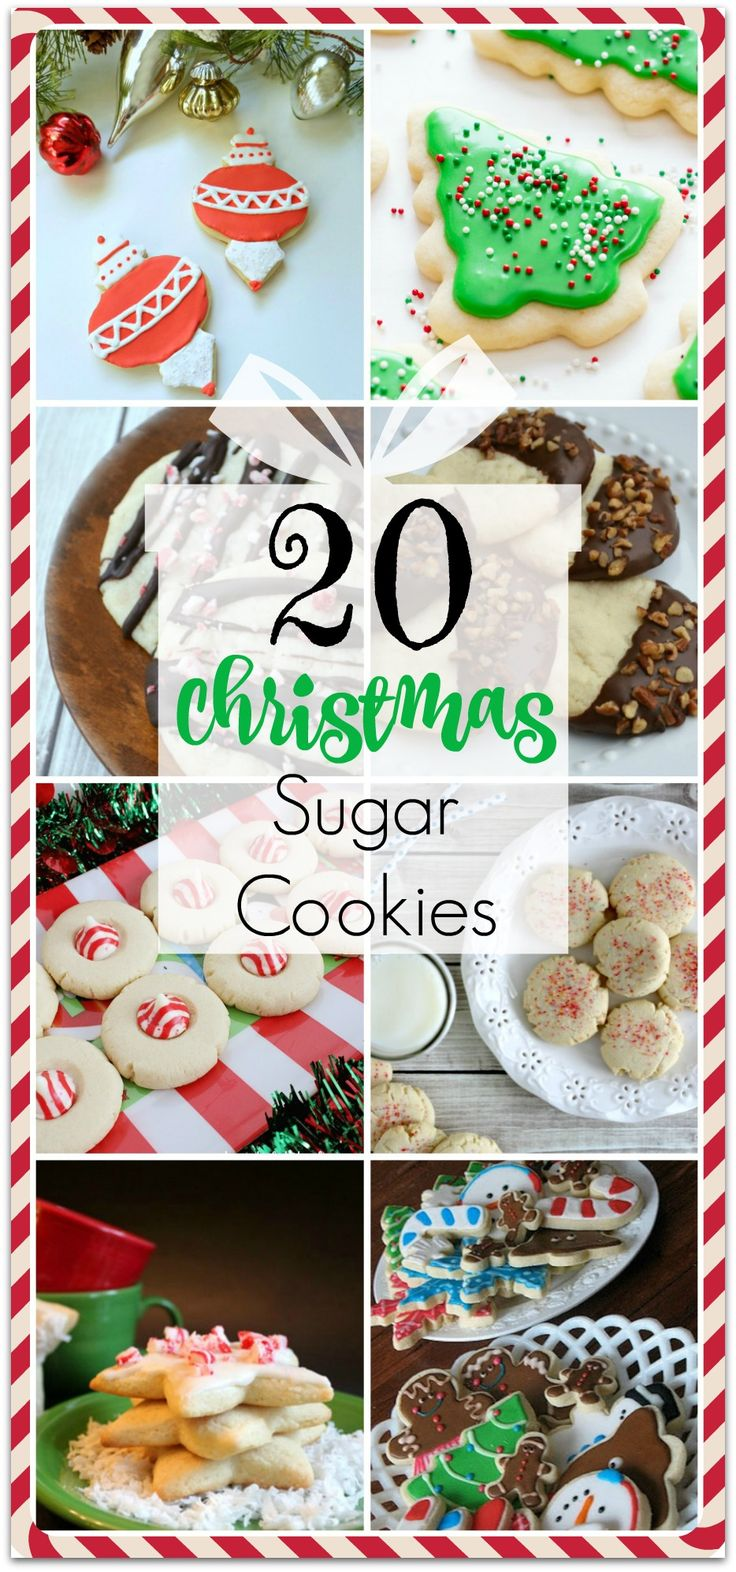 Christmas sugar cookie decorating ideas - 20 Christmas Sugar Cookies Your Family Will Love